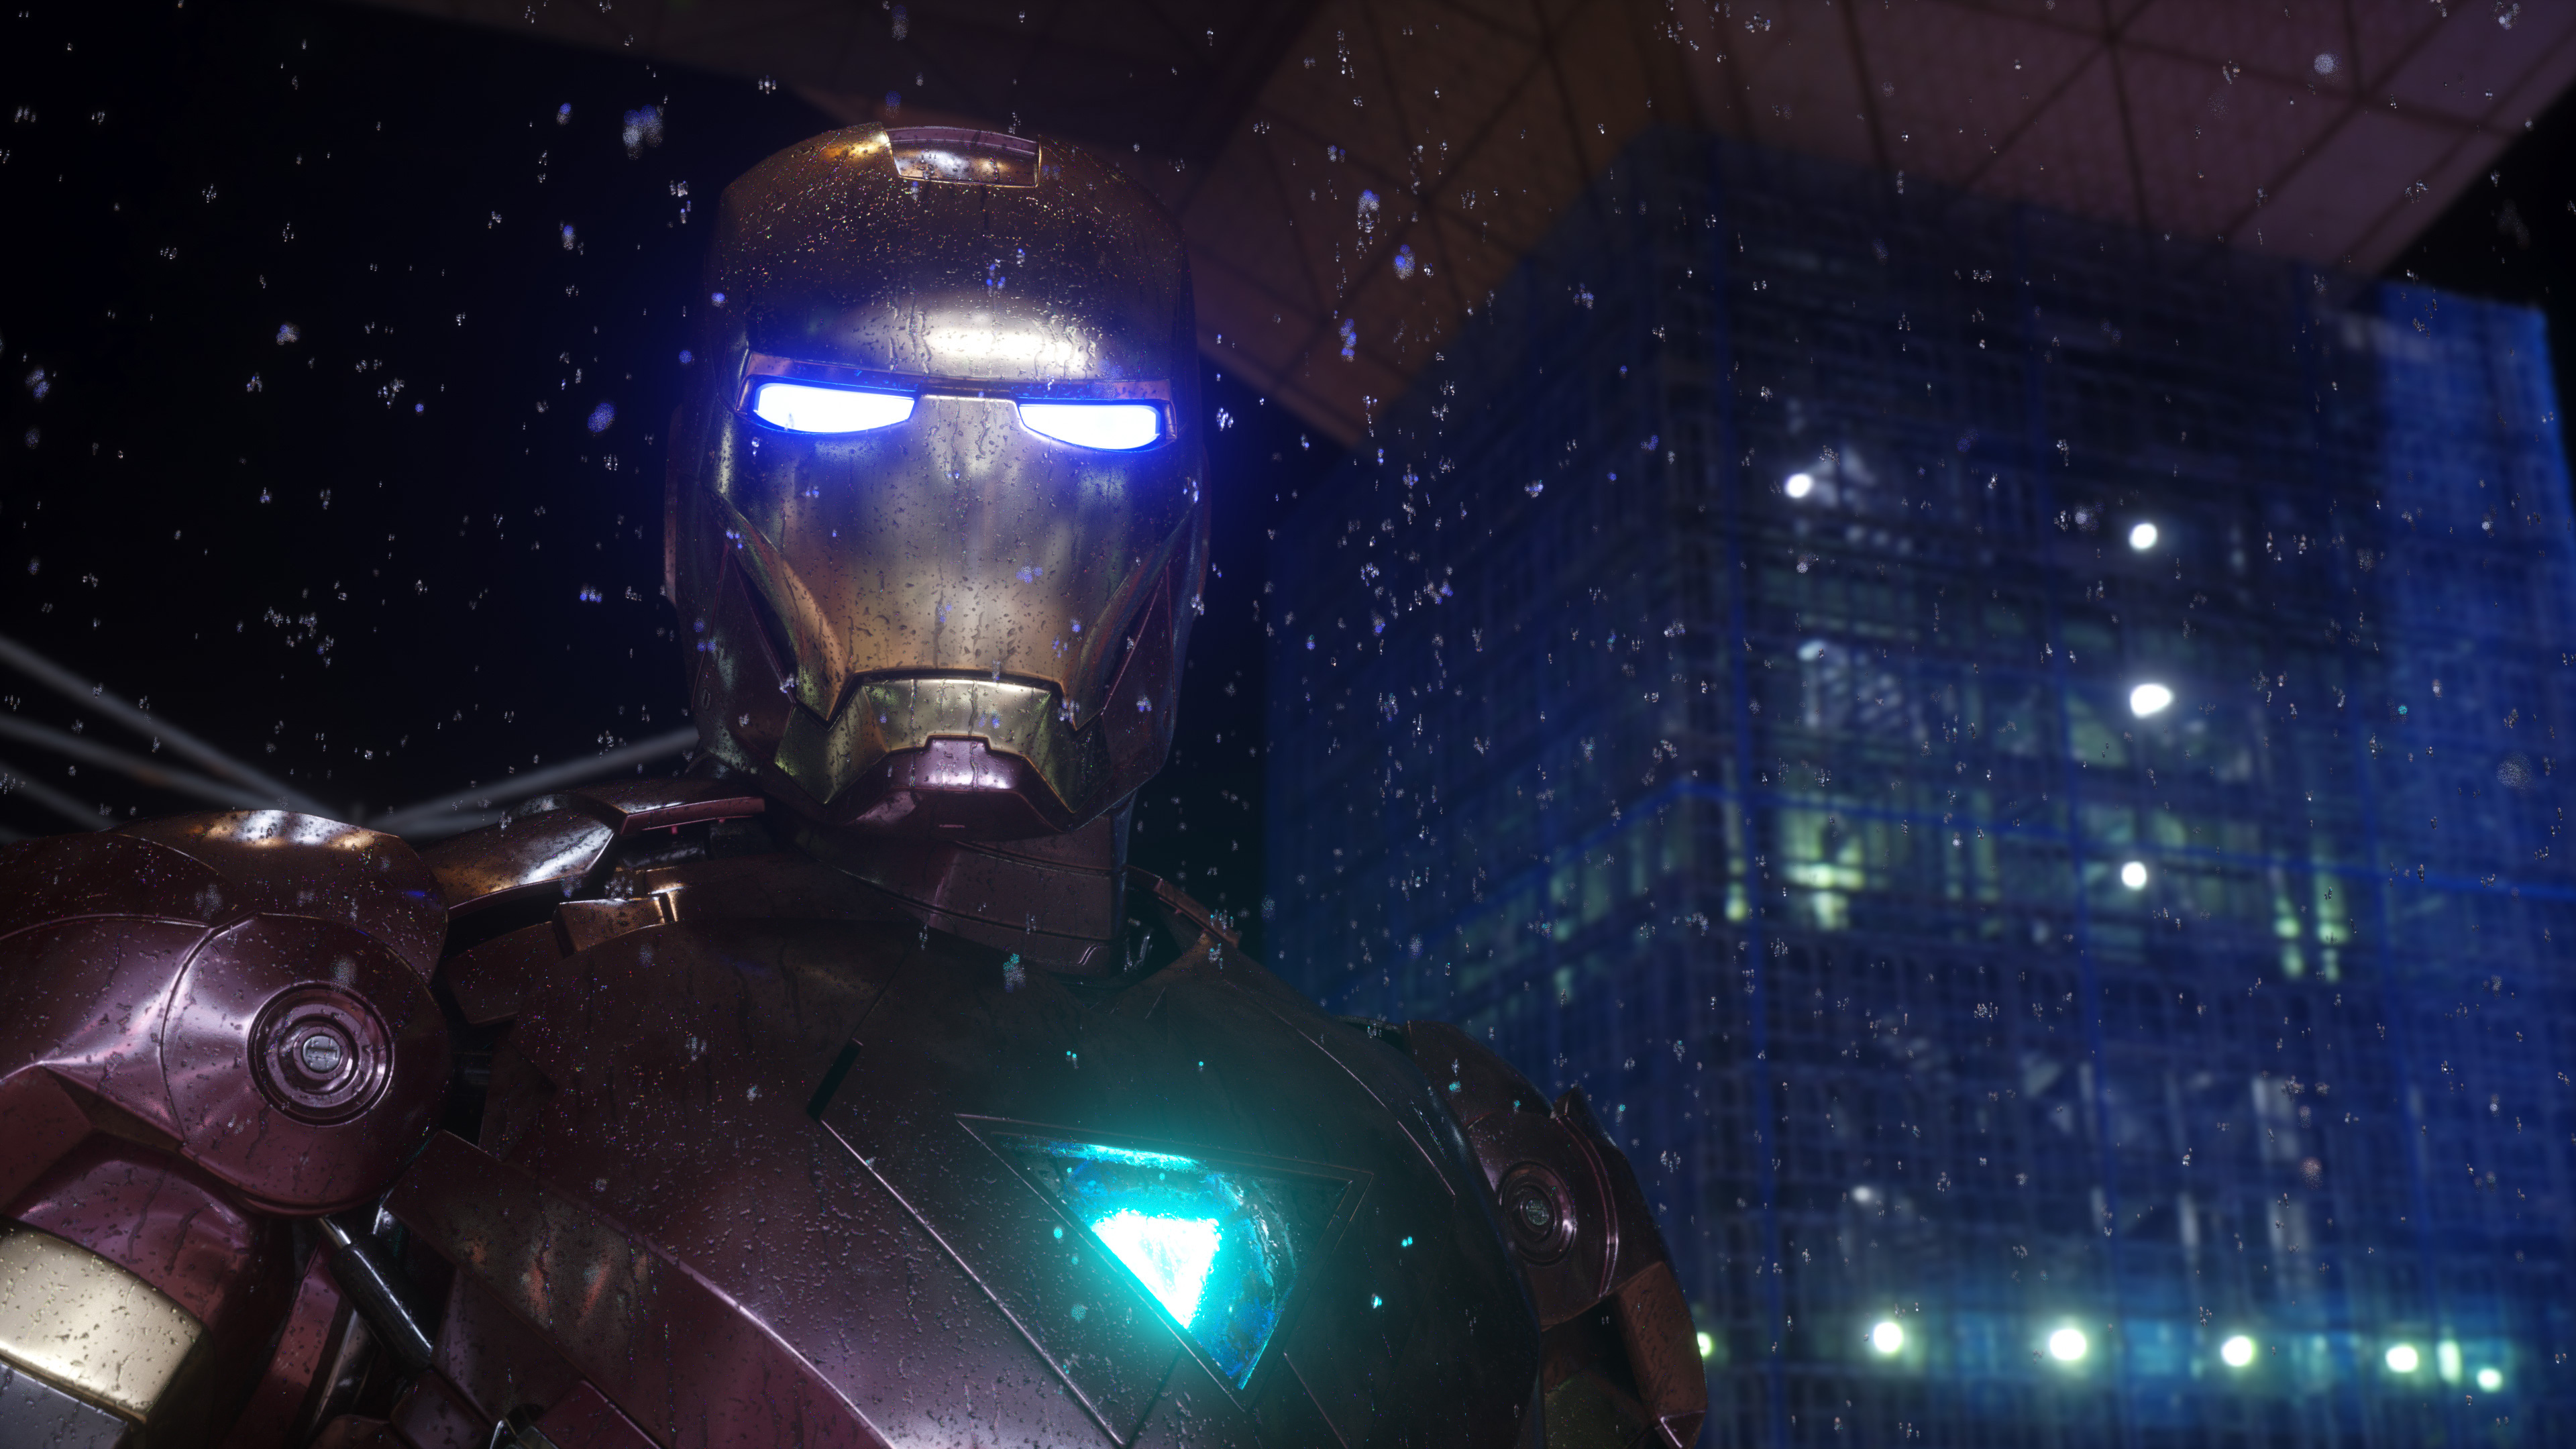 1280x800 4k iron man 720p hd 4k wallpapers images backgrounds photos and pictures - Iron man wallpaper 4k ...